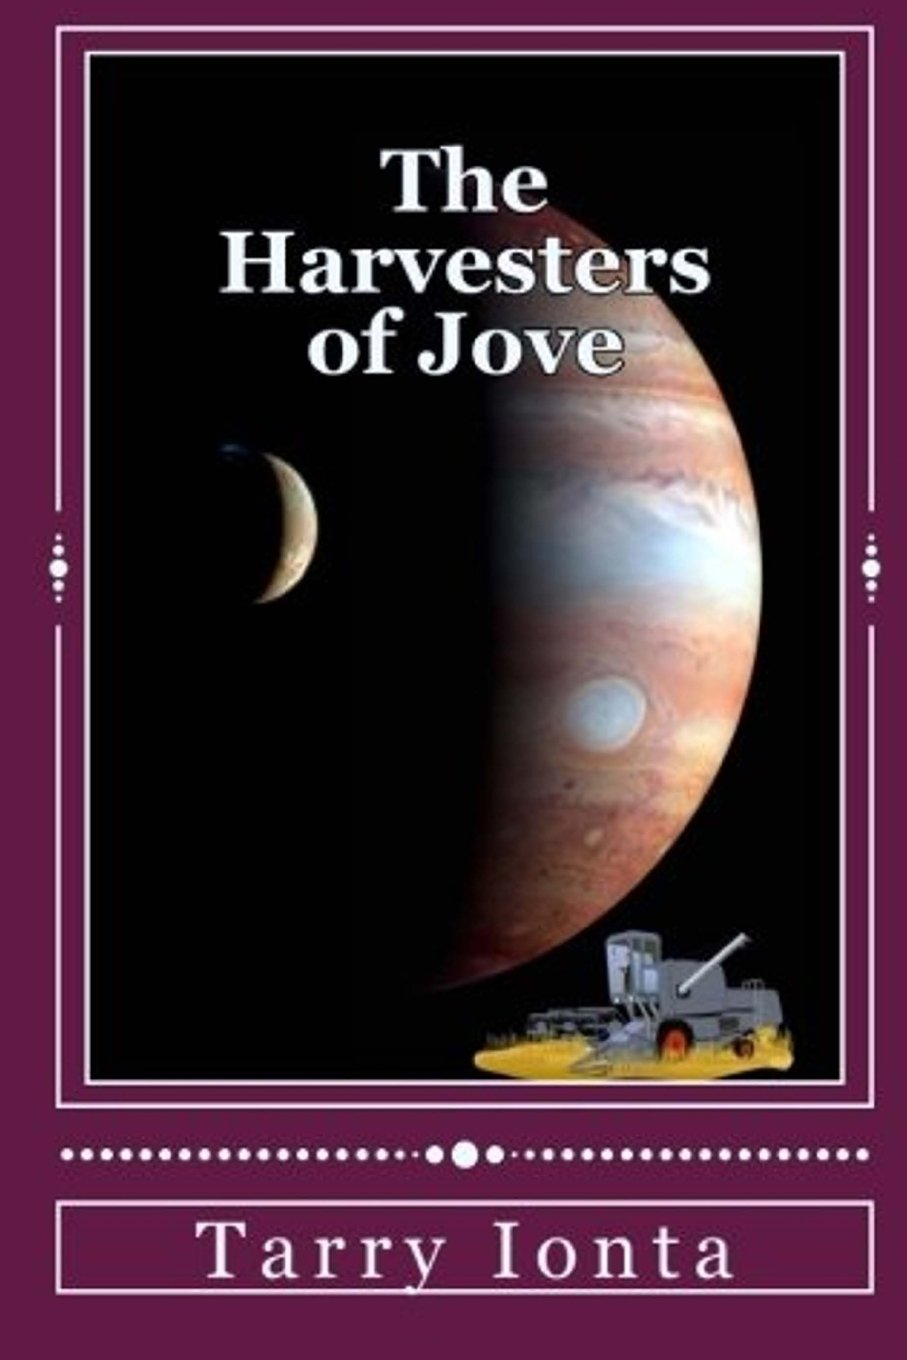 The Harvesters of Jove